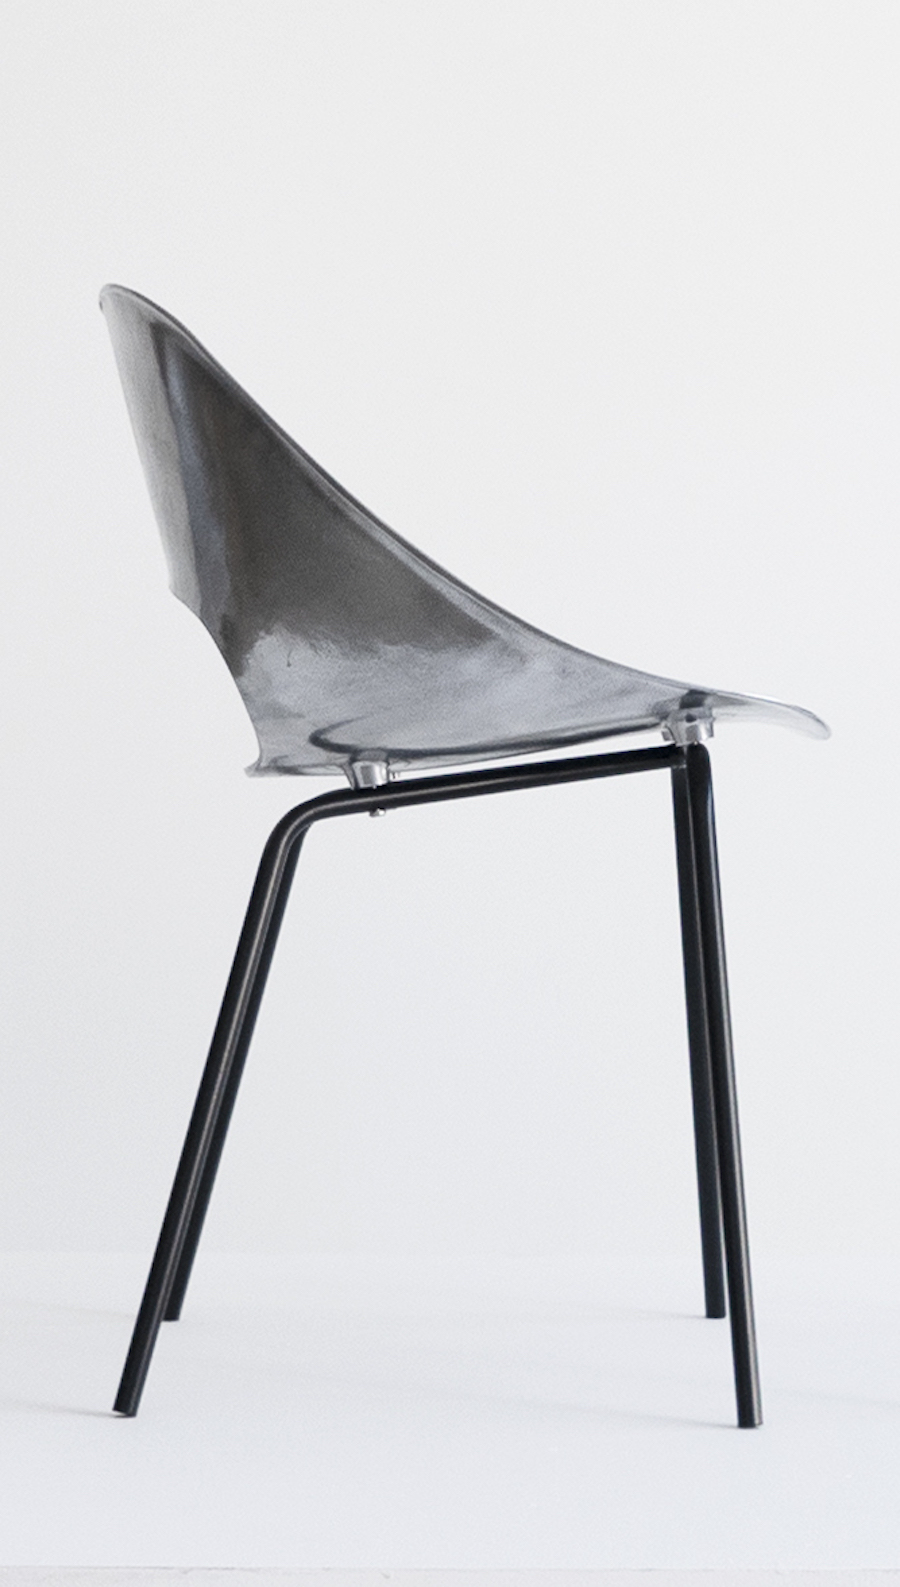 "Pierre Guariche, Set of Three ""Tonneau"" Cast Aluminum Chairs, c. 1950-1959, Aluminum, Iron, 28 H x 18 W x 16 D inches_7.jpg"